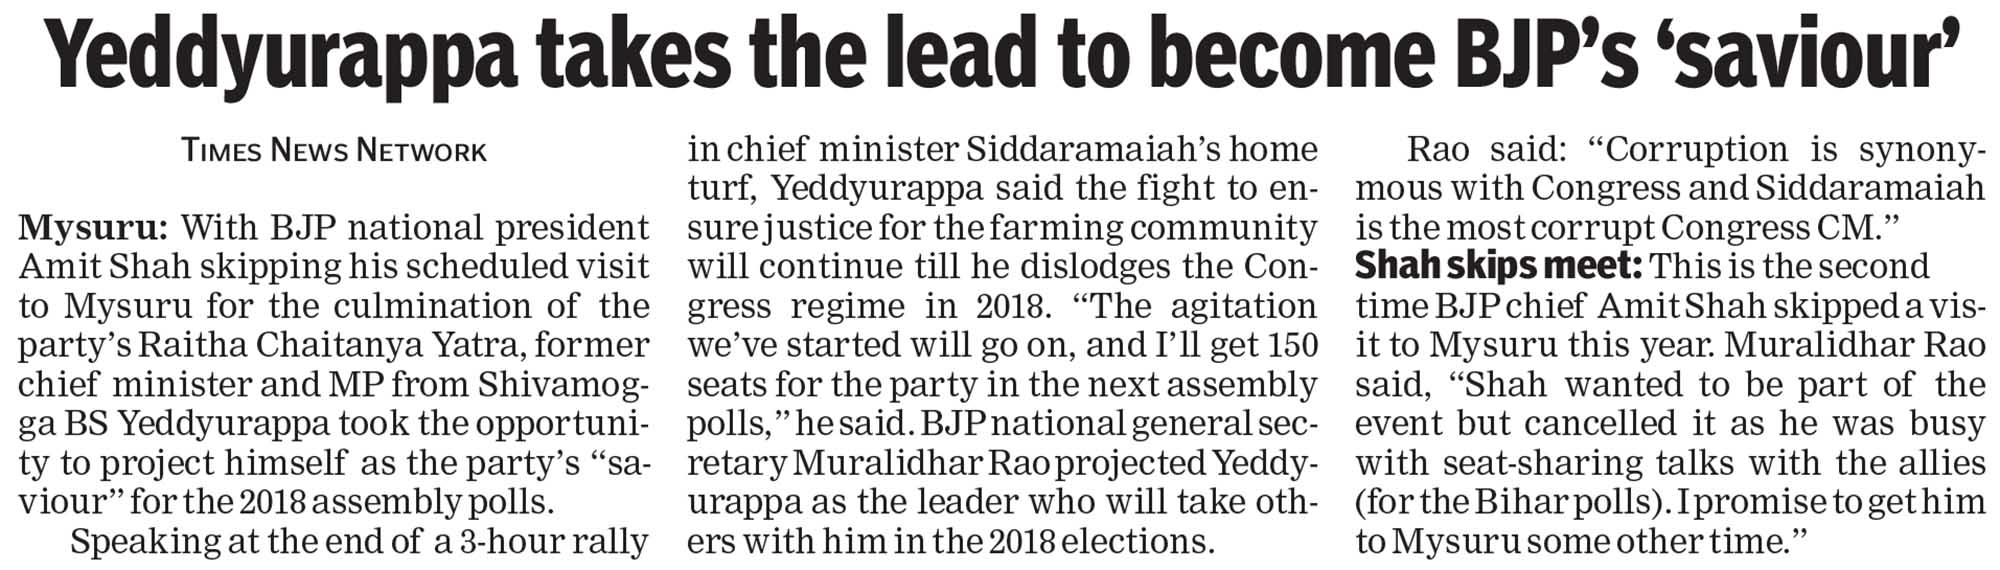 Yeddyurappa takes the lead to become BJP's 'saviour'